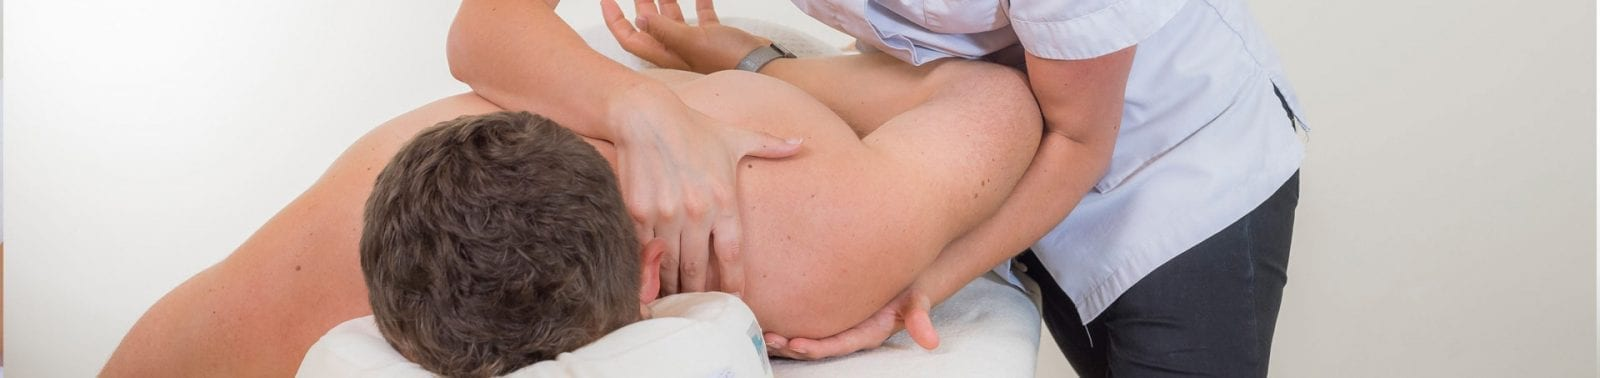 Sports Massage - Wiltshire